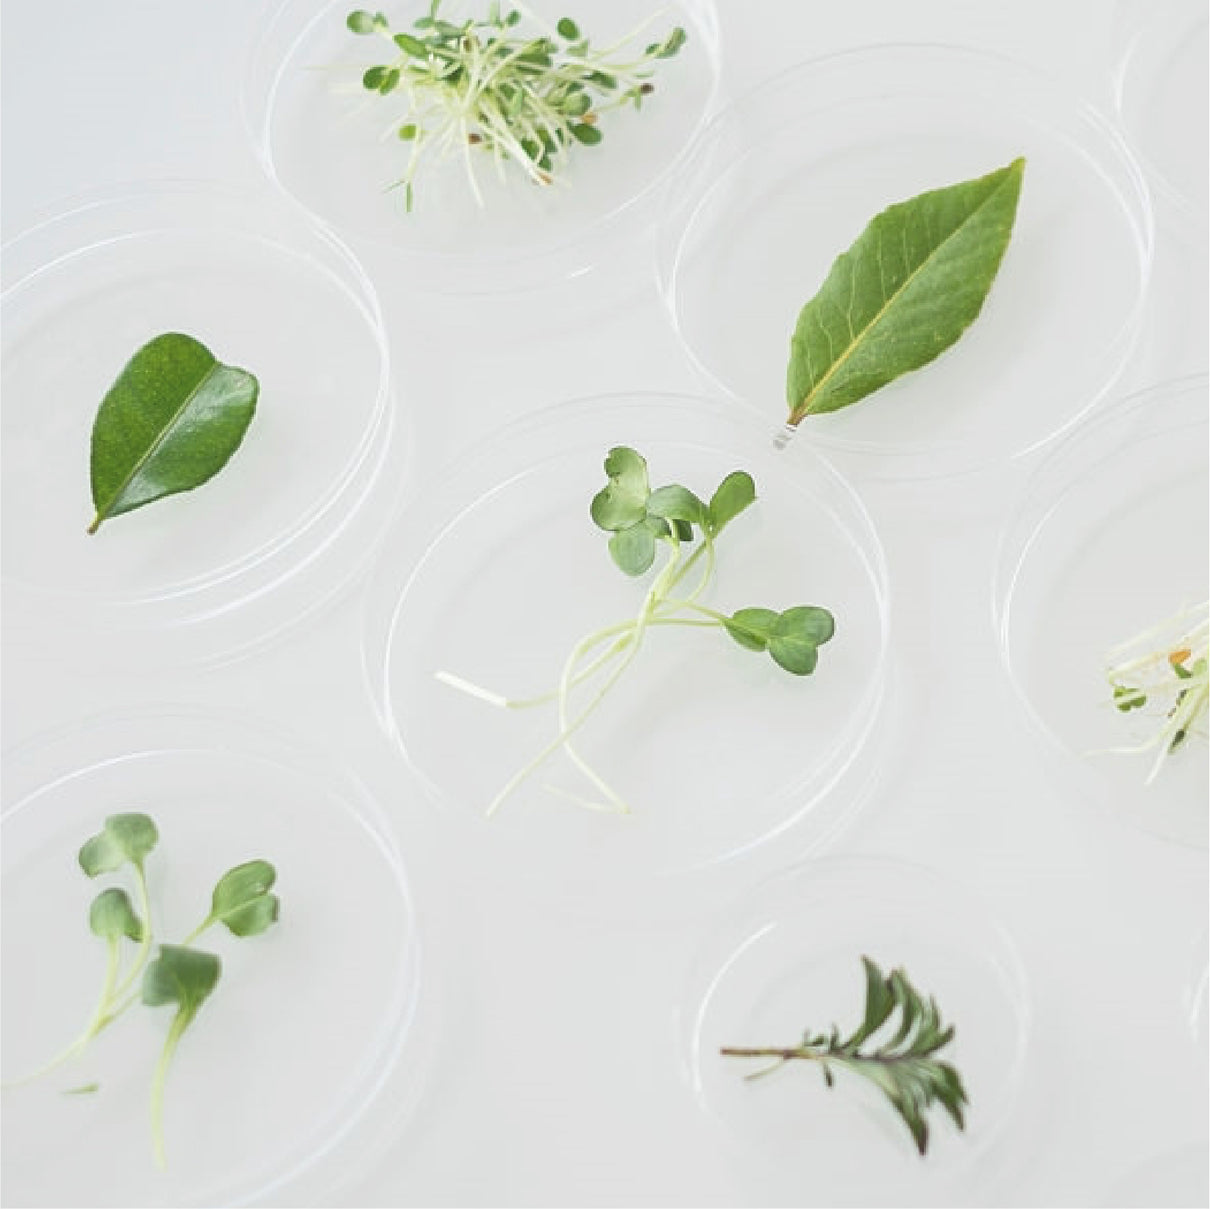 Photo of plant parts in petri dishes